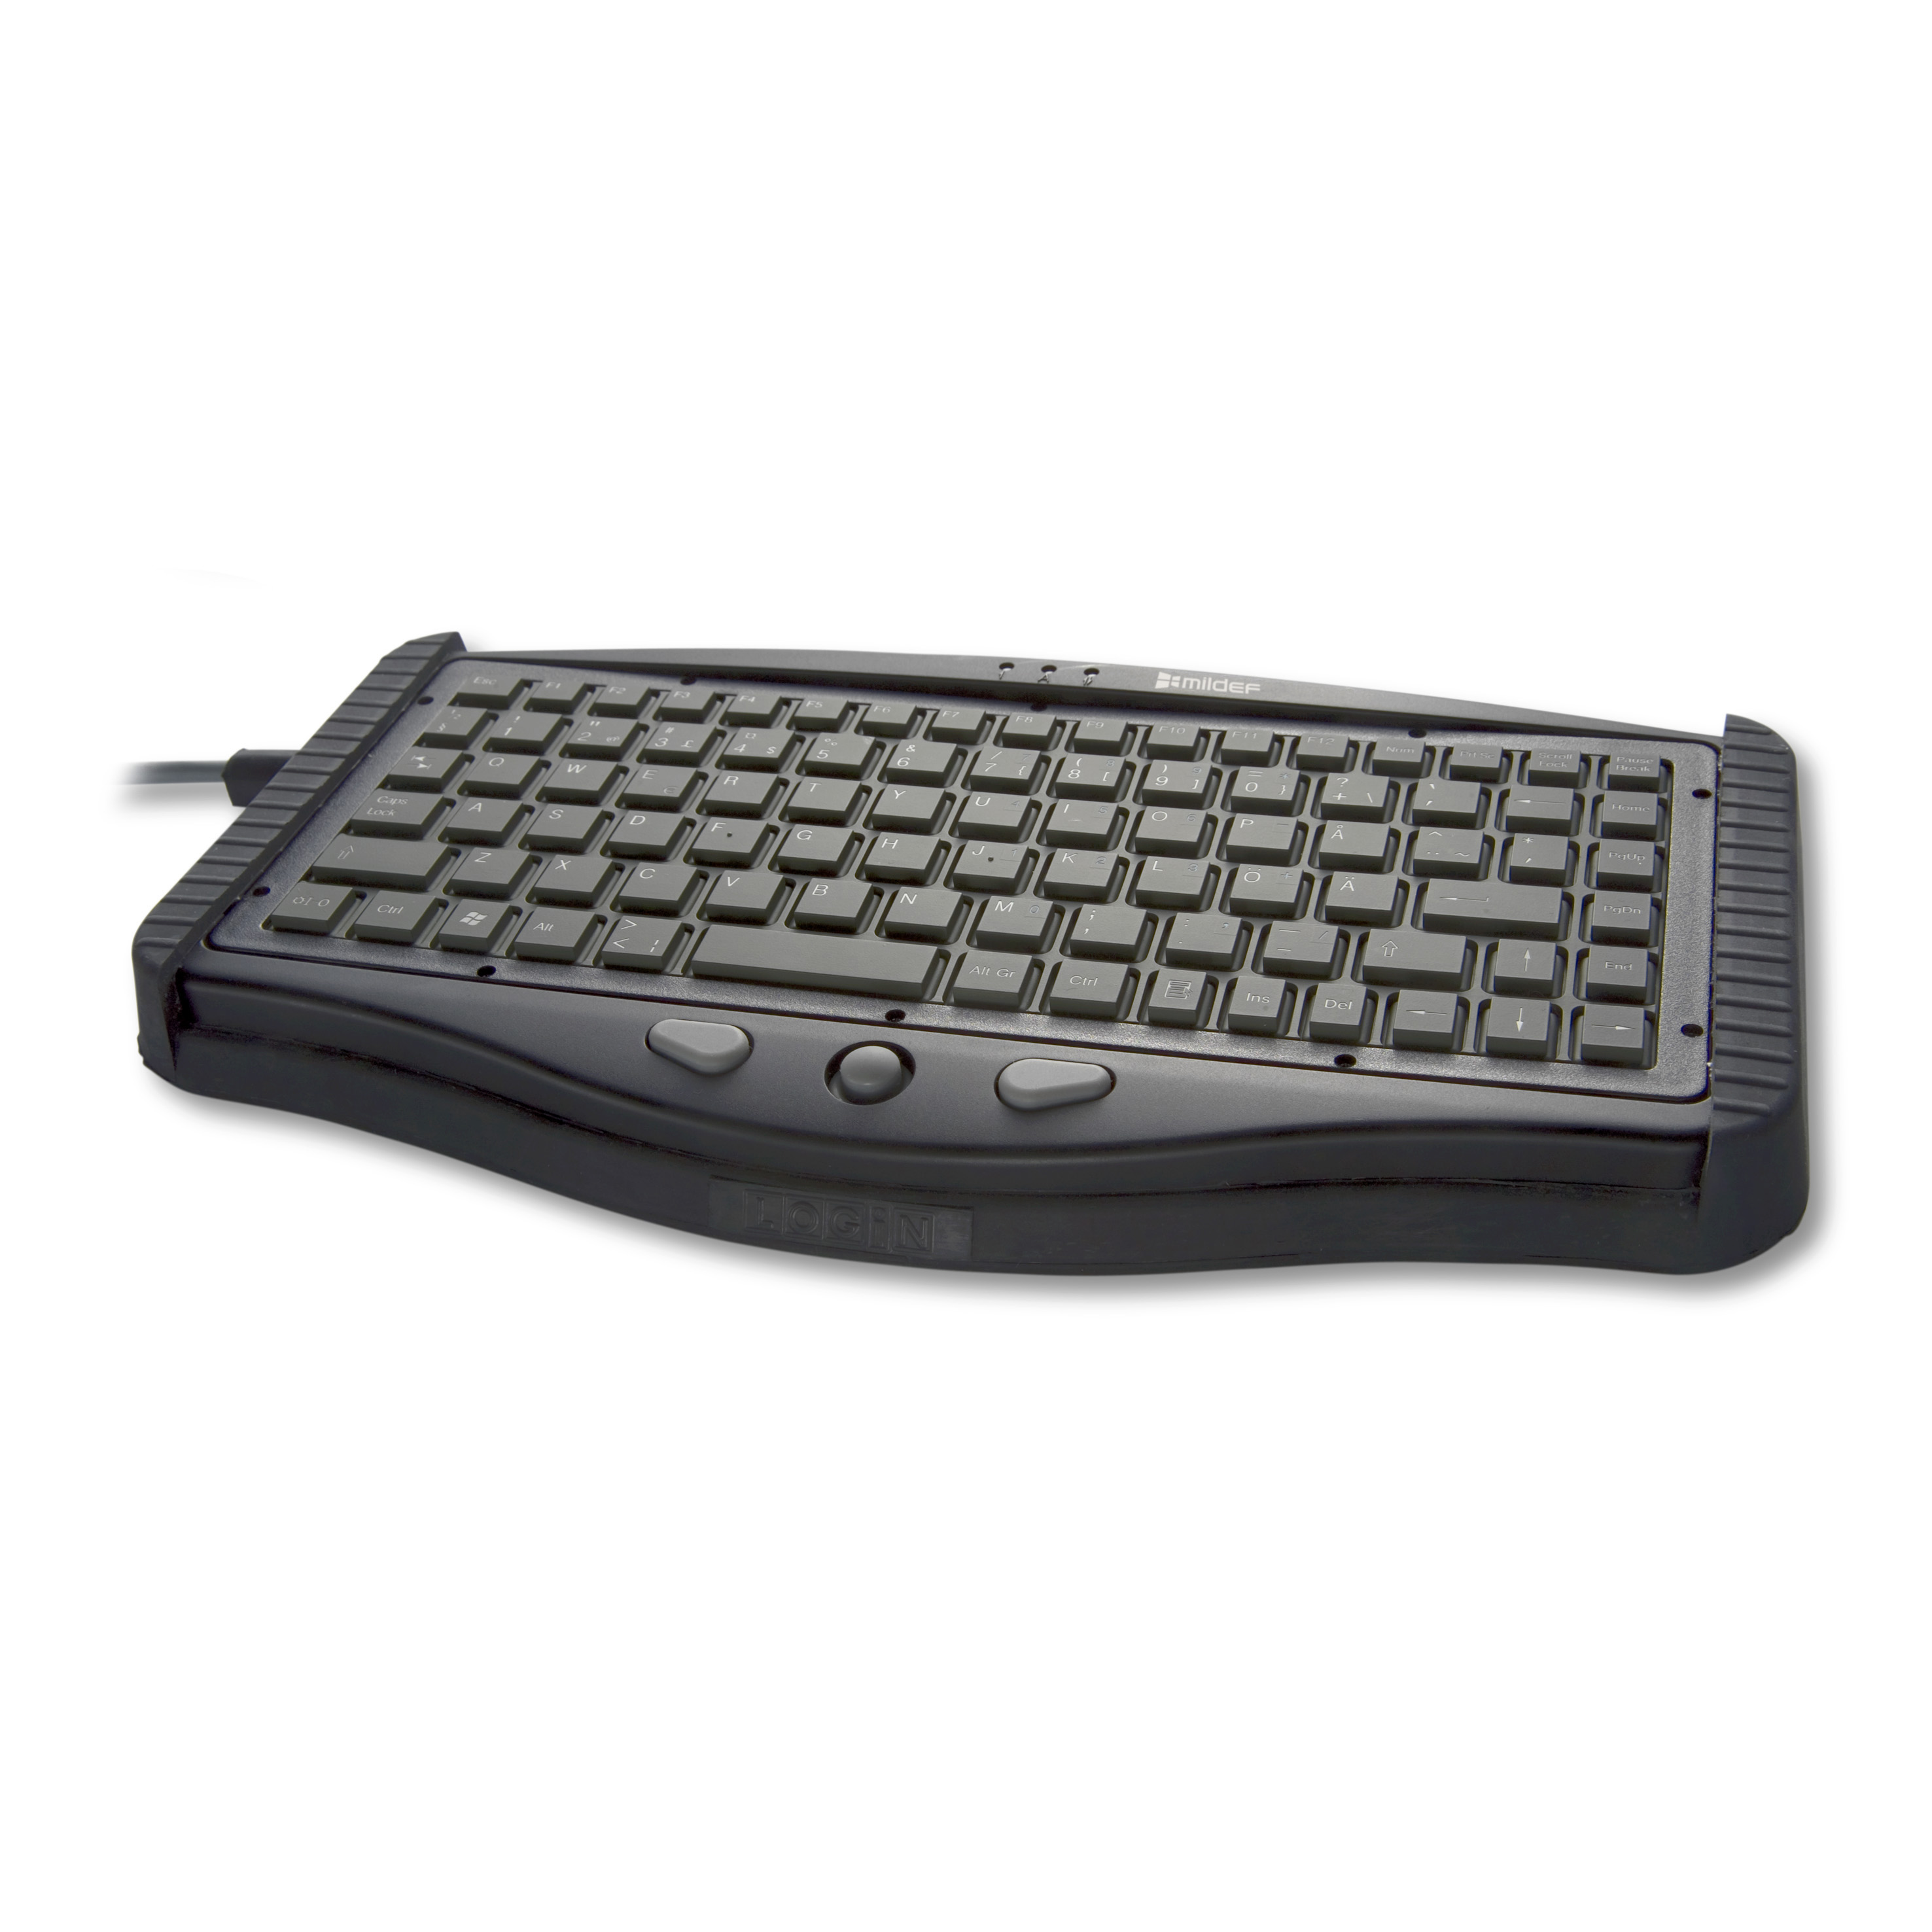 IP54 Keyboard